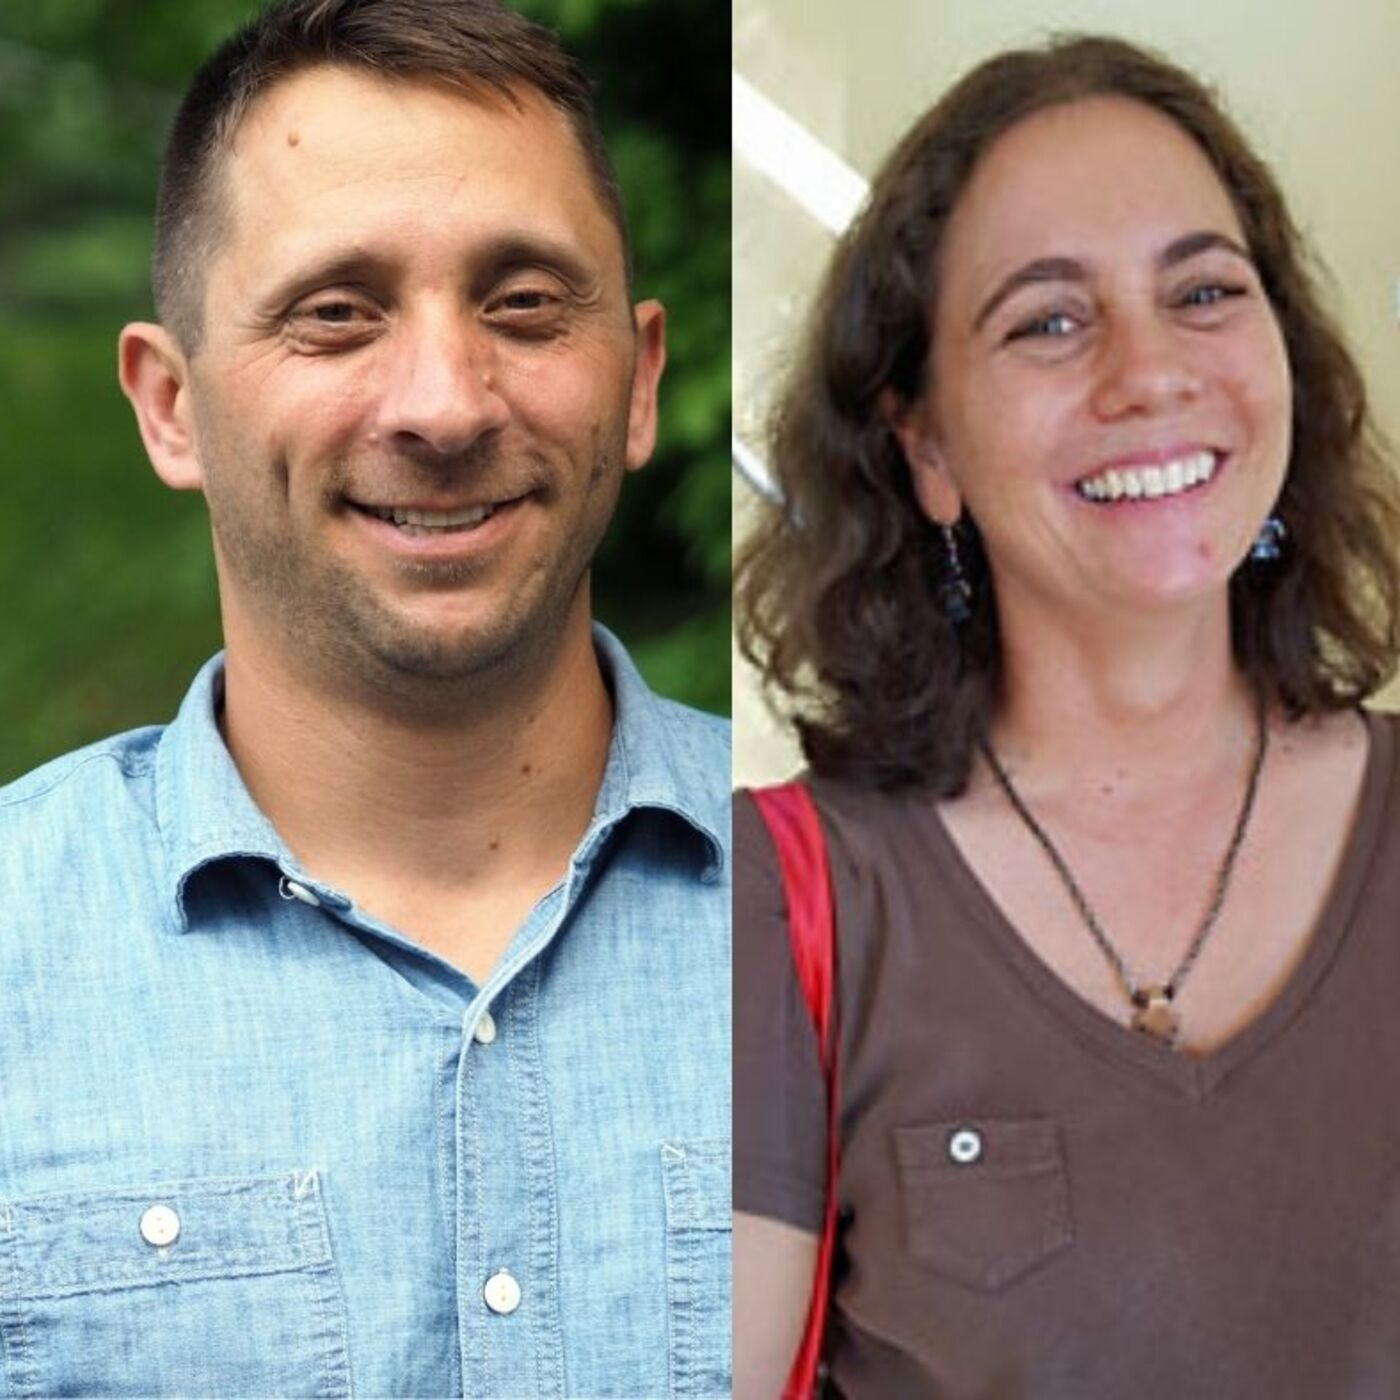 The World of Academia: Career and Education with Joseph Lanning and Aly Dagang